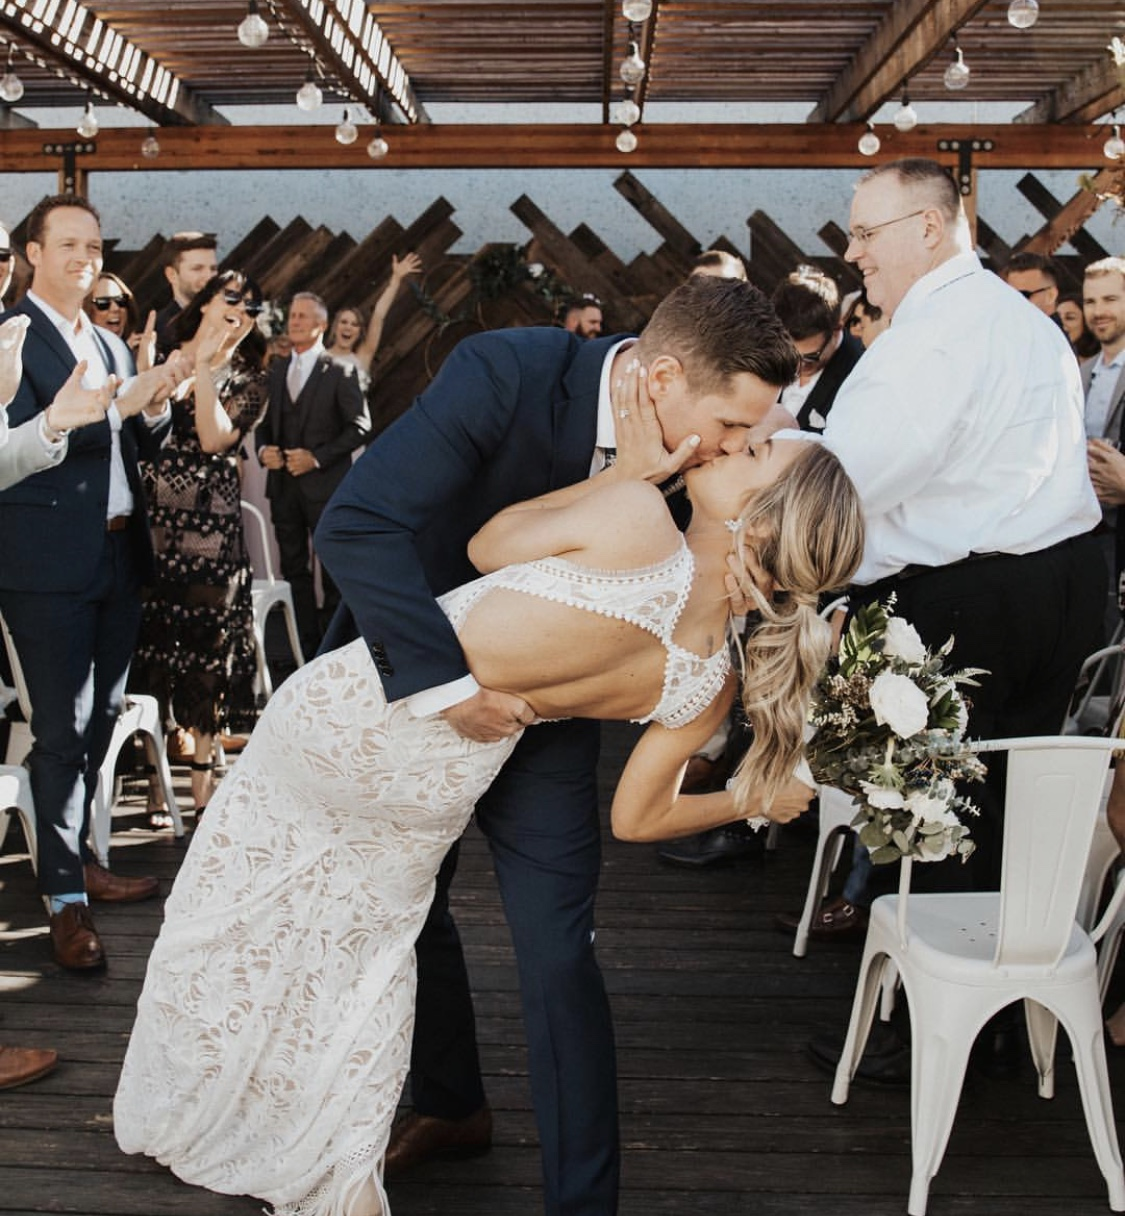 Our most popular services in the San Diego county area are: Wedding DJ /MC,Wedding Guitarists, and Uplightingfor Receptions, Cocktail Hours, and Wedding Receptions -